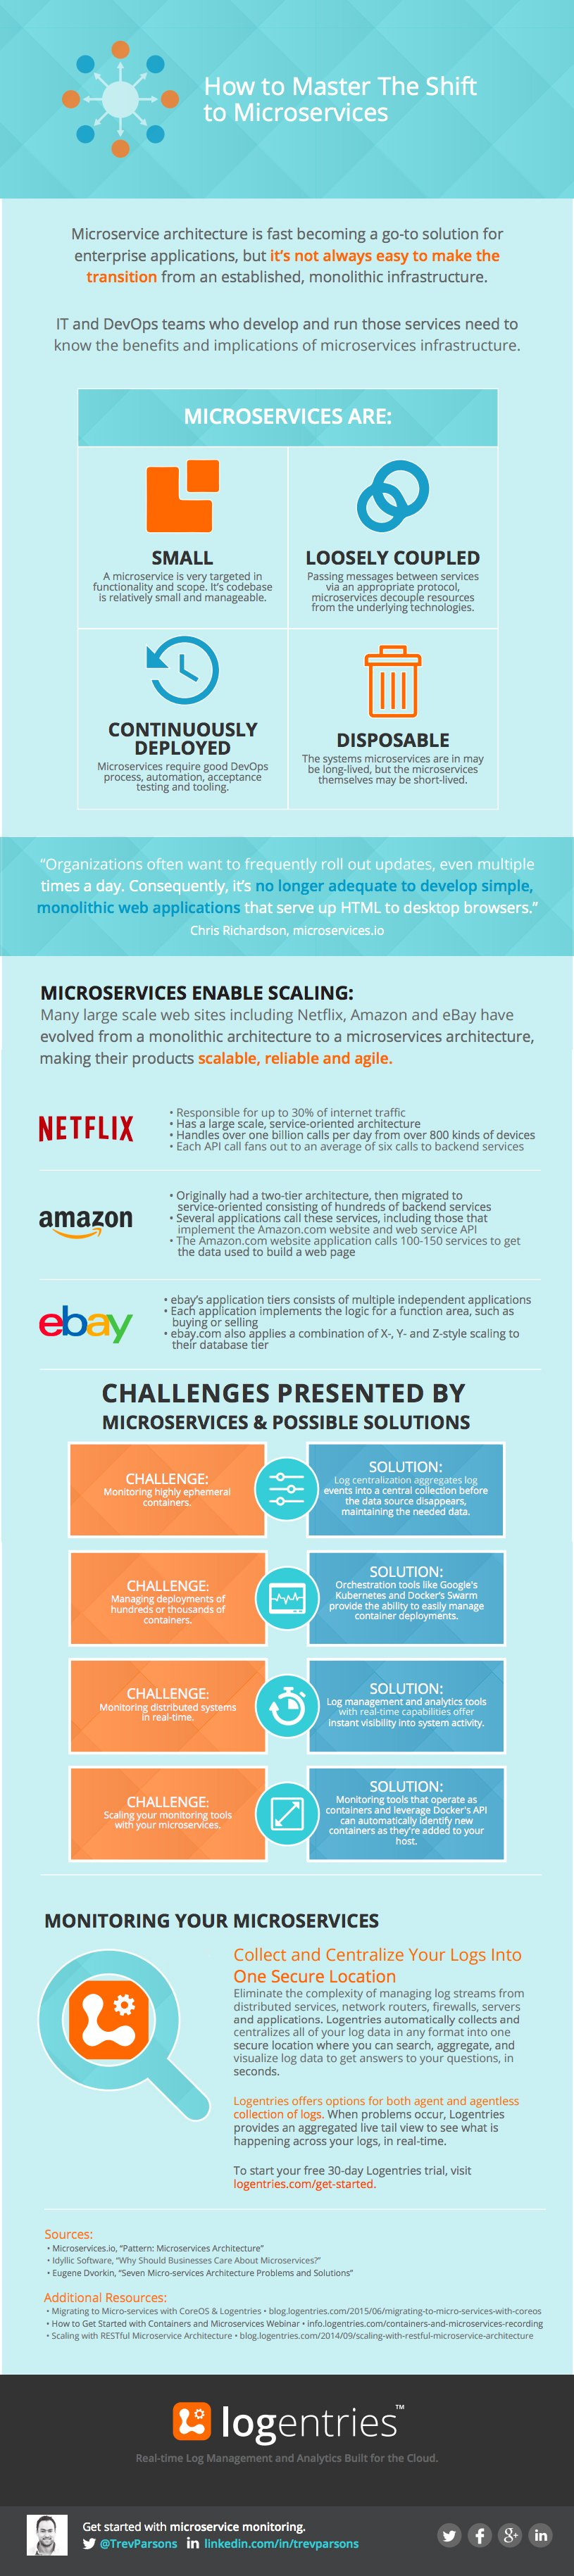 microservices_infographic